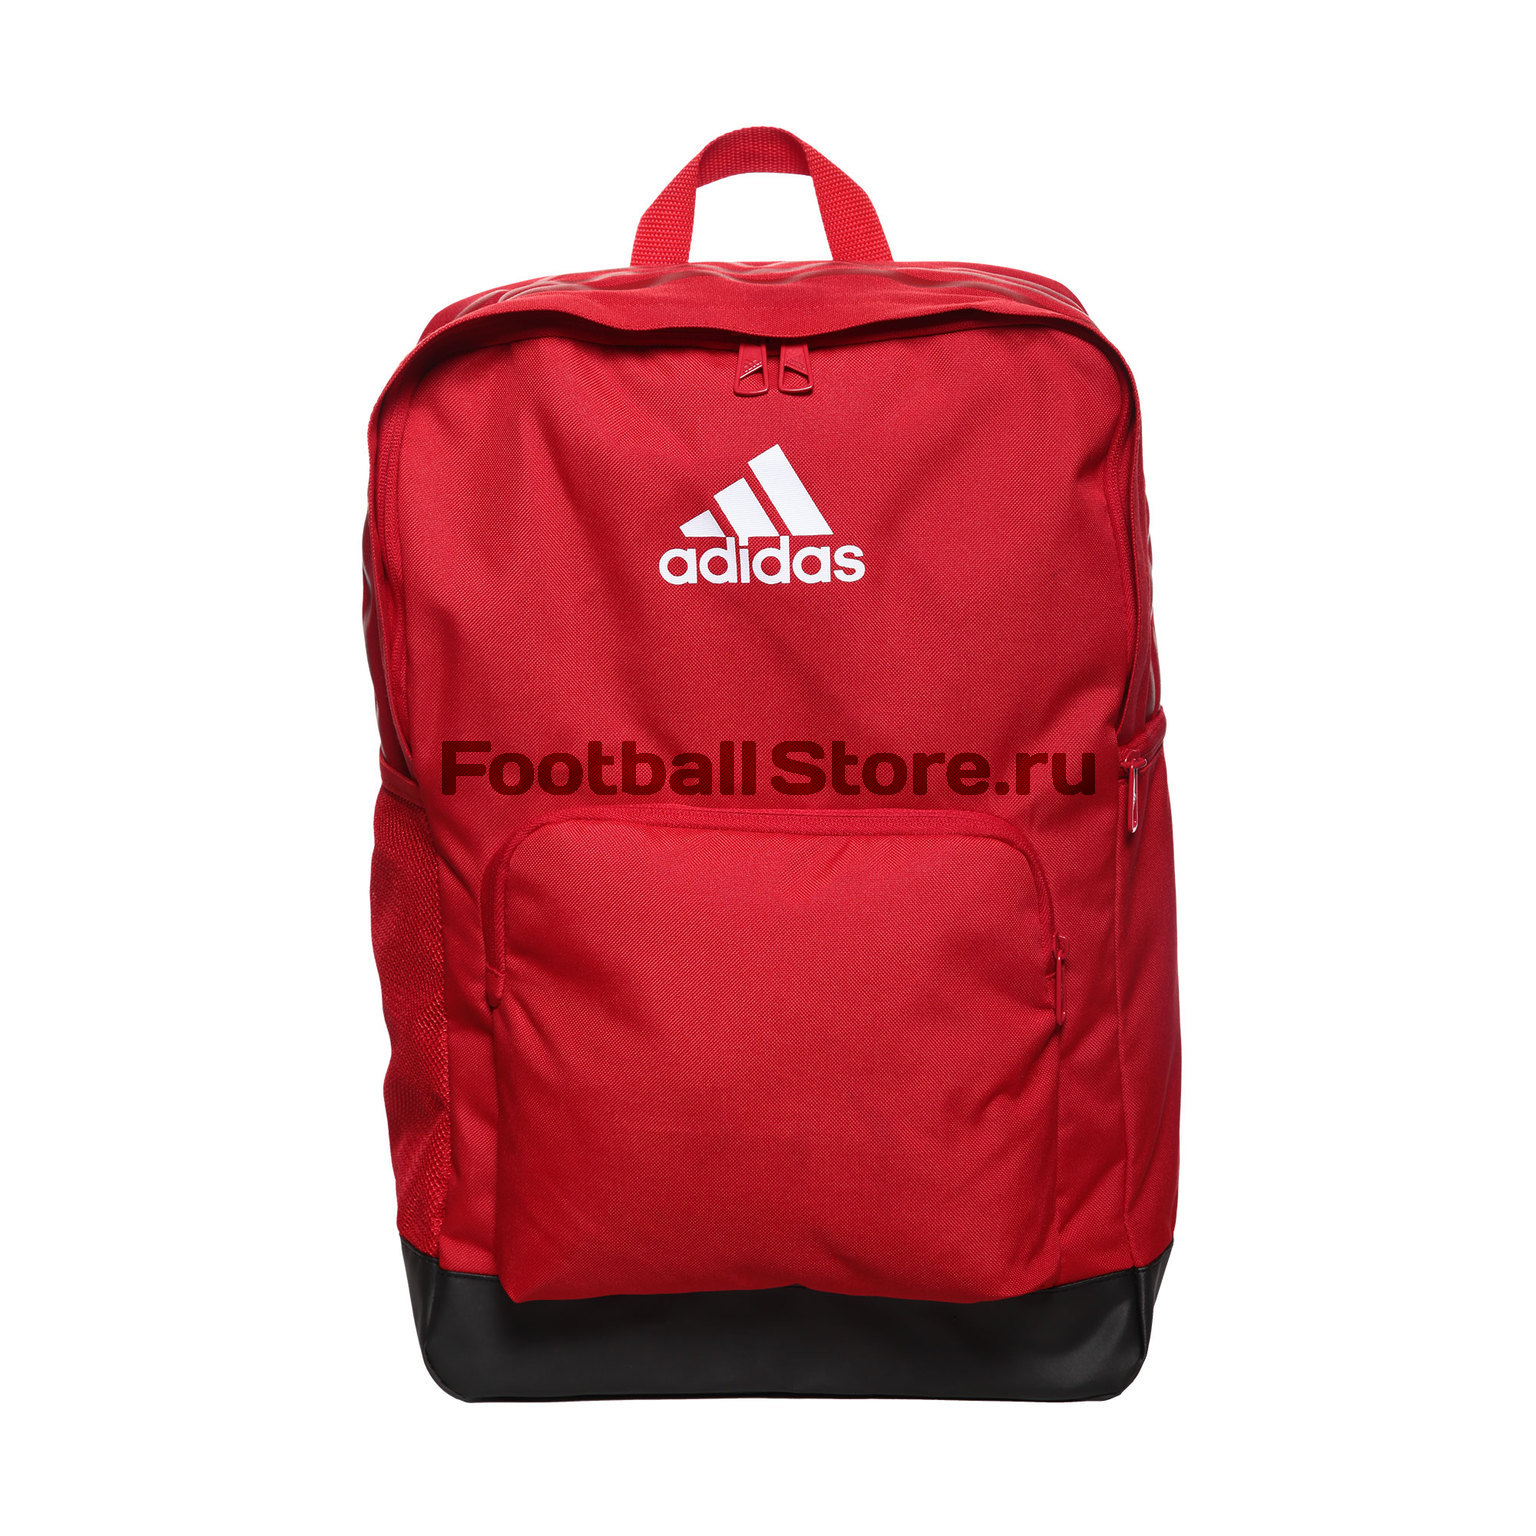 Рюкзак Adidas Tiro BP BS4761 рюкзак adidas tiro bp bs4761